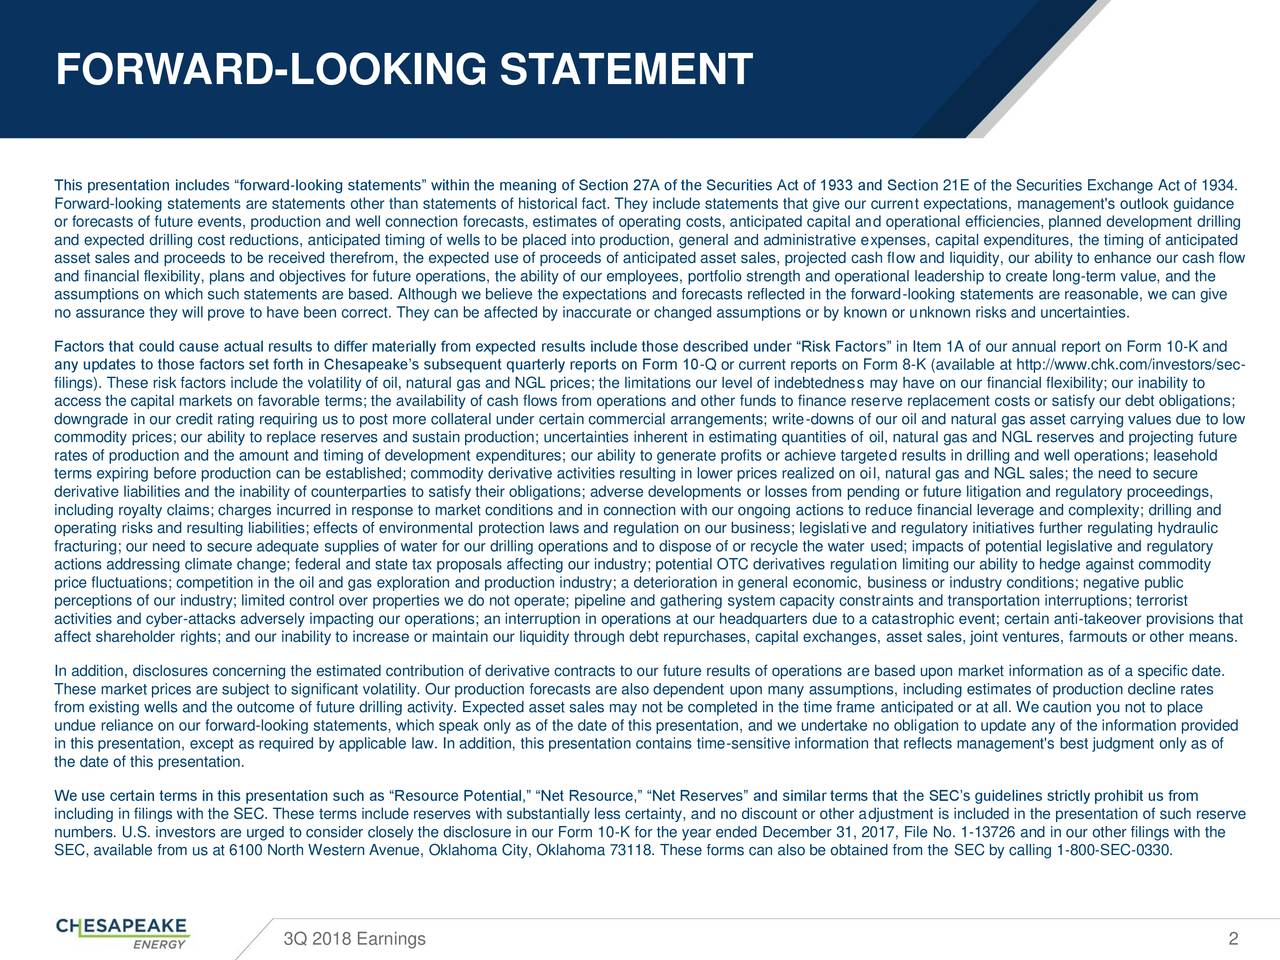 """This presentation includes """"forward-looking statements"""" within the meaning of Section 27A of the Securities Act of 1933 and Section 21E of the Securities Exchange Act of 1934. Forward-looking statements are statements other than statements of historical fact. They include statements that give our current expectations, management's outlook guidance or forecasts of future events, production and well connection forecasts, estimates of operating costs, anticipated capital and operational efficiencies, planned development drilling and expected drilling cost reductions, anticipated timing of wells to be placed into production, general and administrative expenses, capital expenditures, the timing of anticipated asset sales and proceeds to be received therefrom, the expected use of proceeds of anticipated asset sales, projected cash flow and liquidity, our ability to enhance our cash flow and financial flexibility, plans and objectives for future operations, the ability of our employees, portfolio strength and operational leadership to create long-term value, and the assumptions on which such statements are based. Although we believe the expectations and forecasts reflected in the forward-looking statements are reasonable, we can give no assurance they will prove to have been correct. They can be affected by inaccurate or changed assumptions or by known or unknown risks and uncertainties. Factors that could cause actual results to differ materially from expected results include those described under """"Risk Factors"""" in Item 1A of our annual report on Form 10-K and any updates to those factors set forth in Chesapeake's subsequent quarterly reports on Form 10-Q or current reports on Form 8-K (available at http://www.chk.com/investors/sec- filings). These risk factors include the volatility of oil, natural gas and NGL prices; the limitations our level of indebtedness may have on our financial flexibility; our inability to access the capital markets on favorable terms; the availa"""